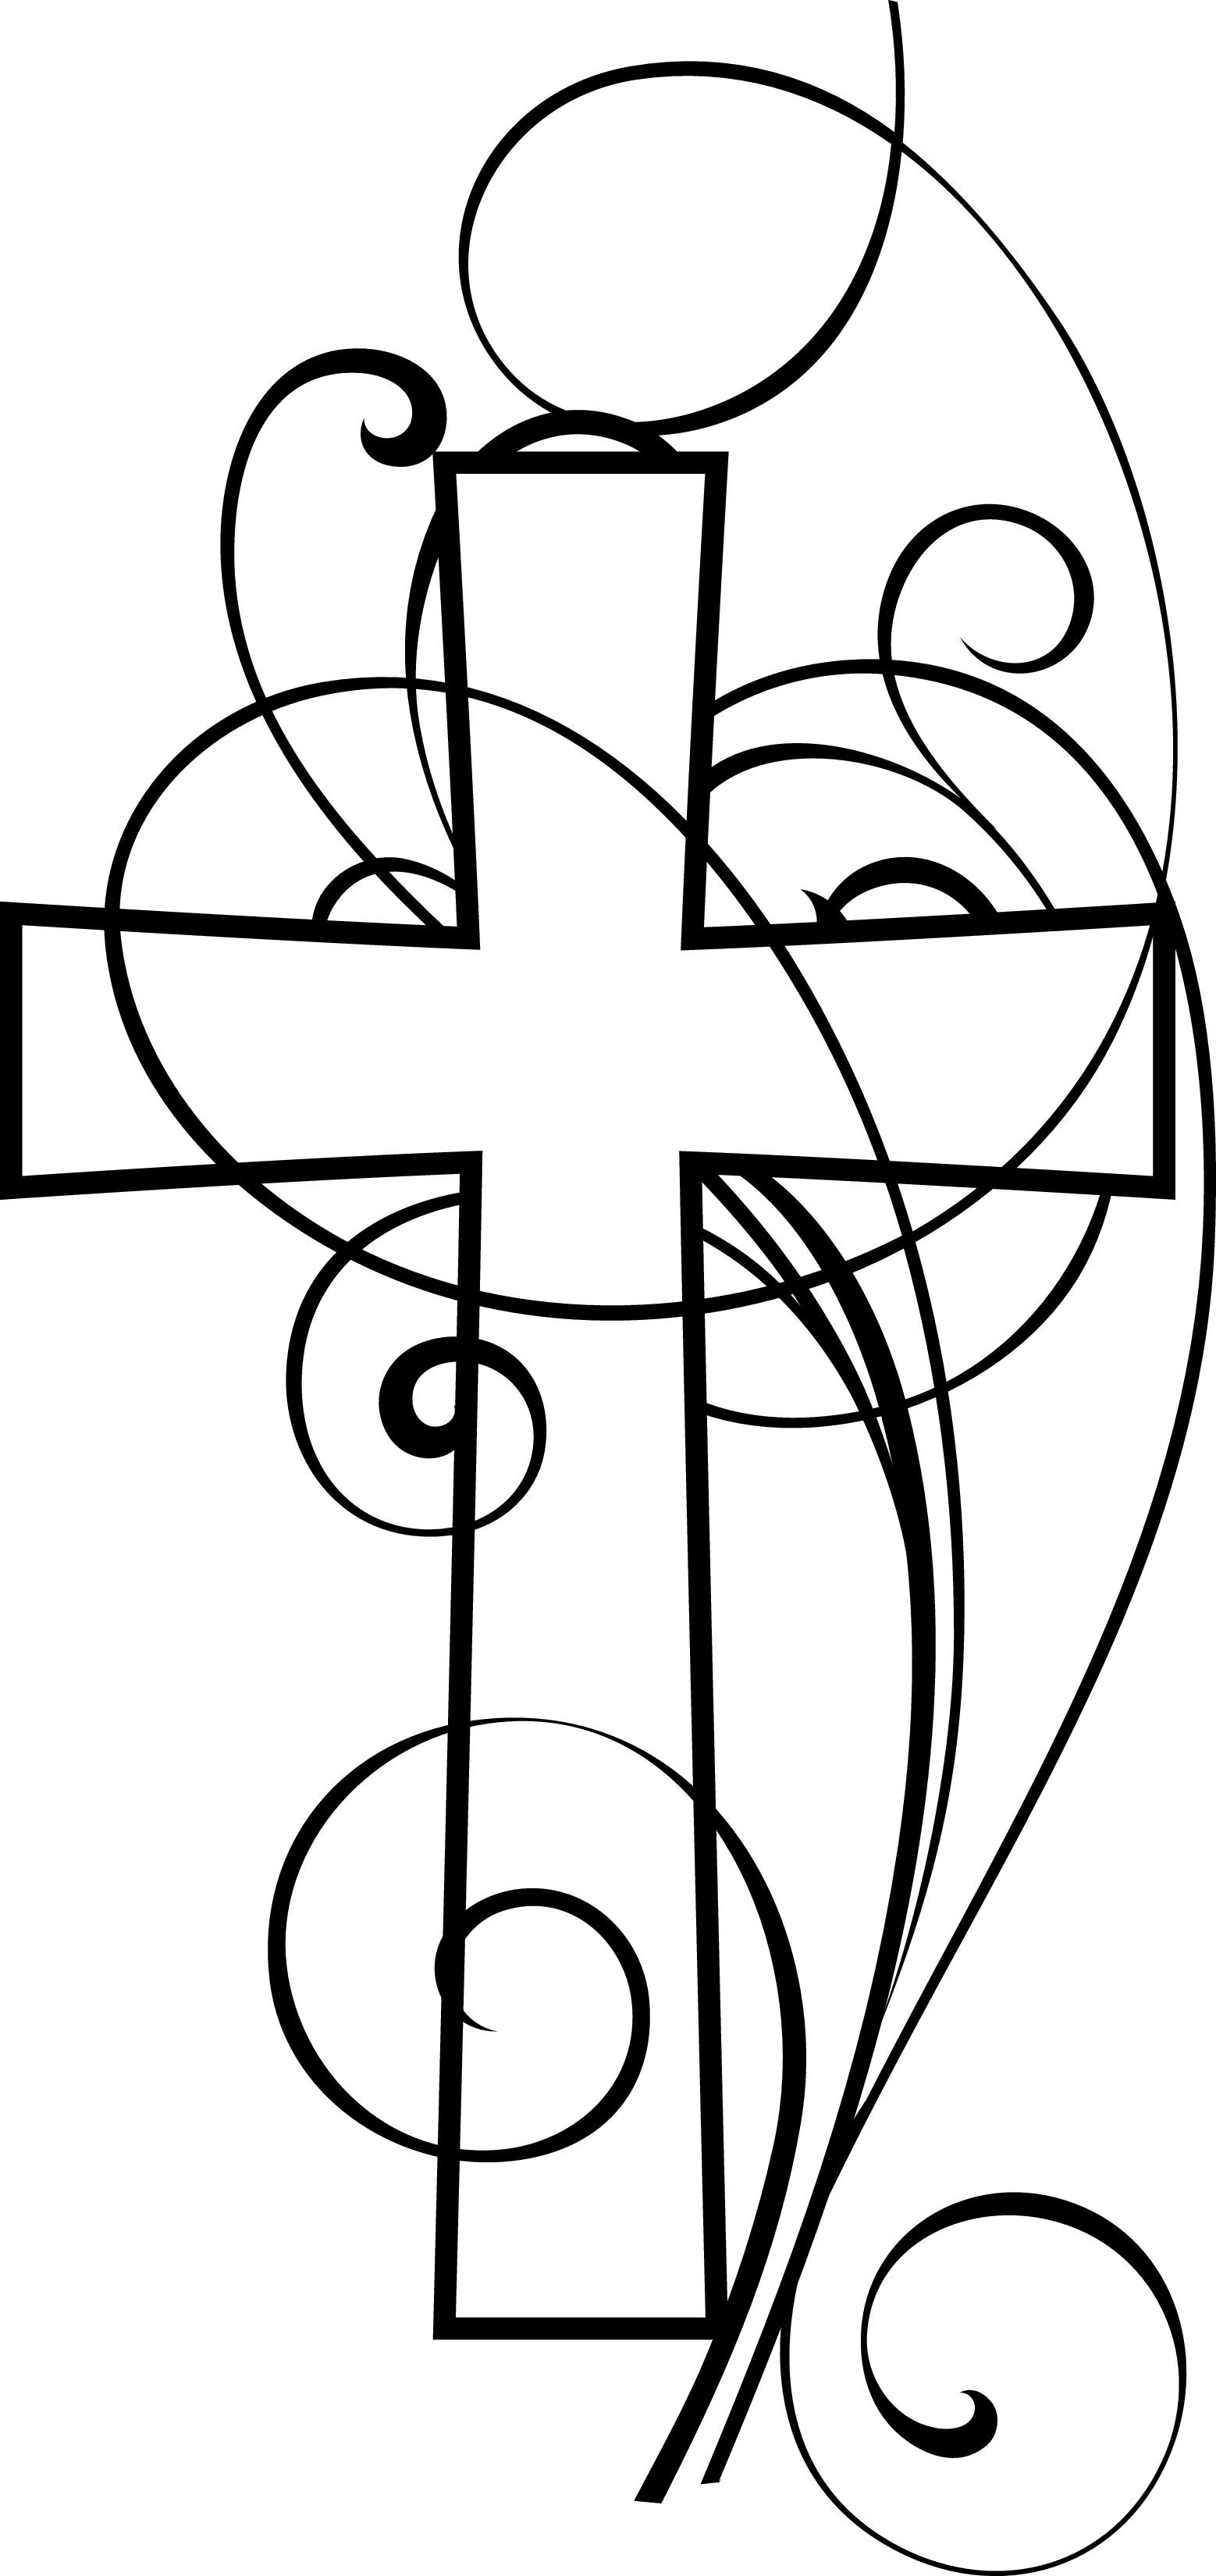 1558x3300 New Earth Clipart Line Drawing